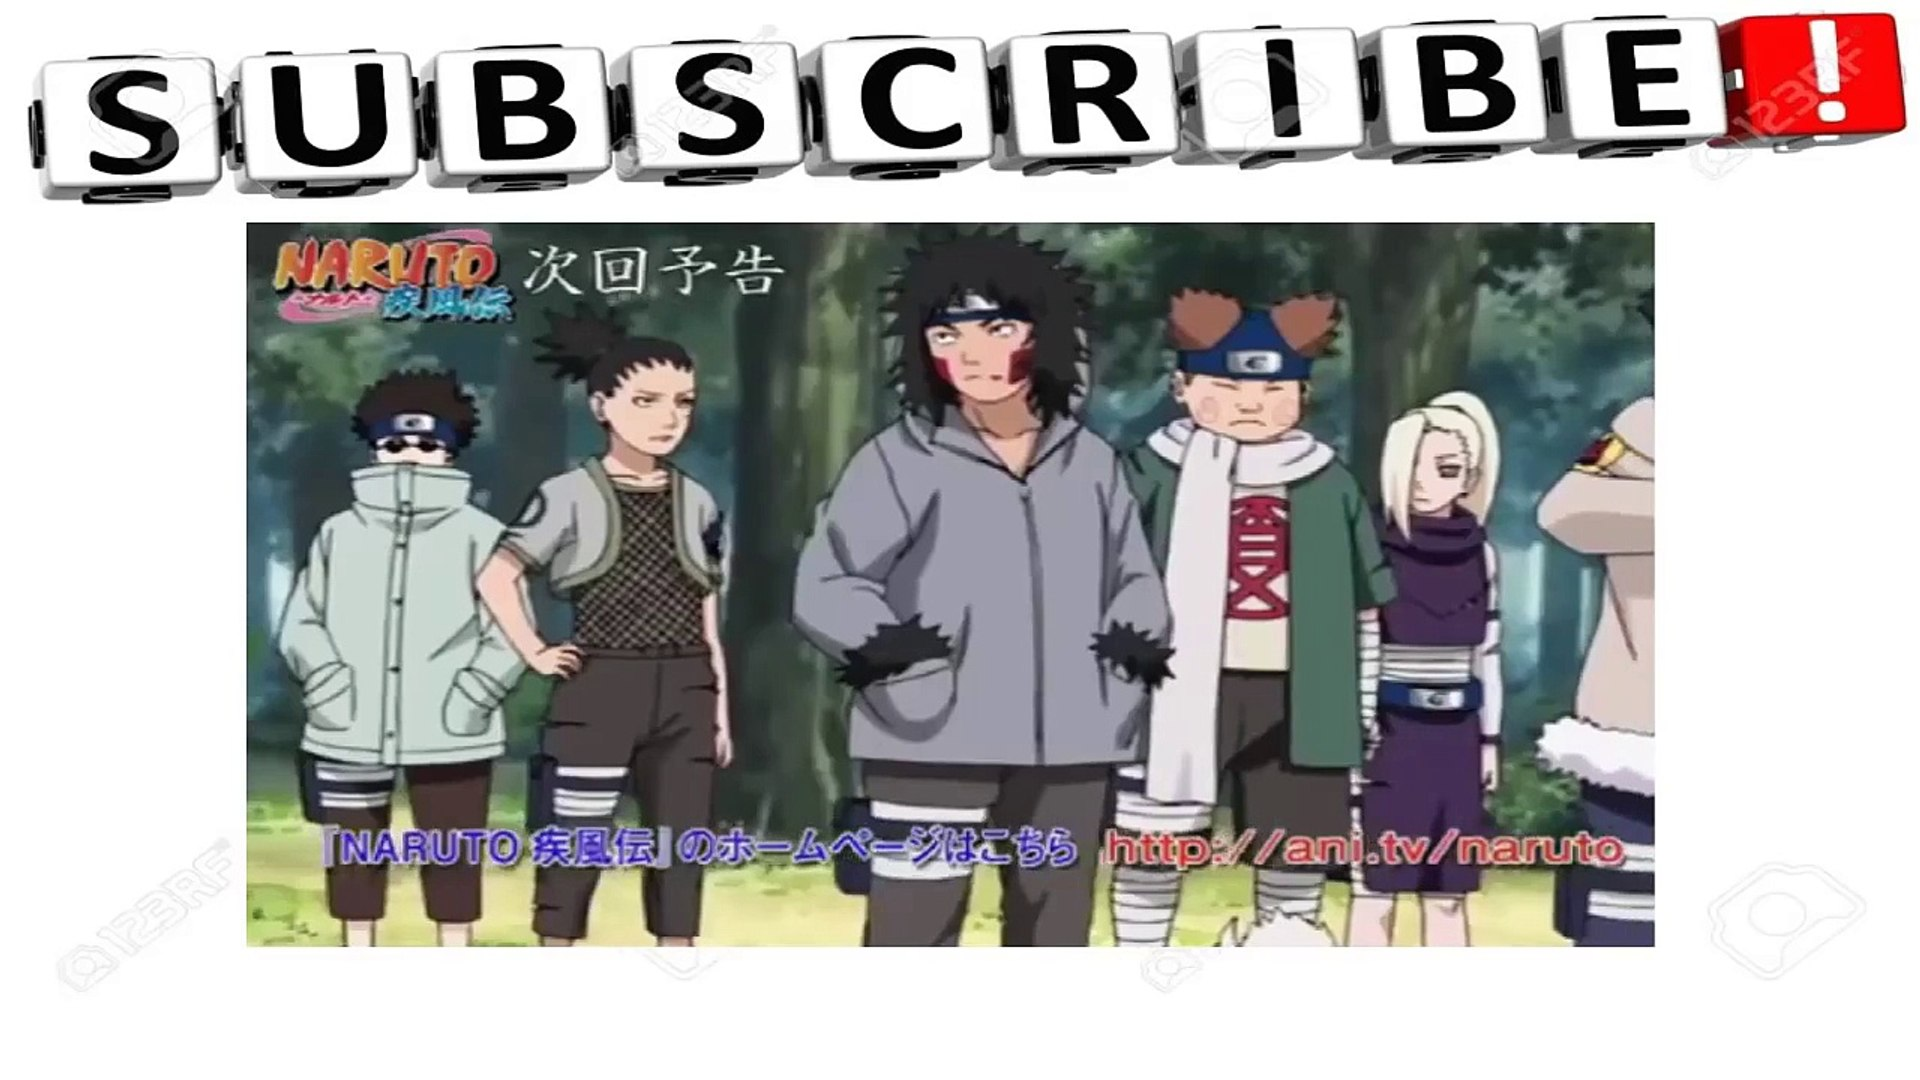 Naruto Shippuden Episode 437 Preview HD